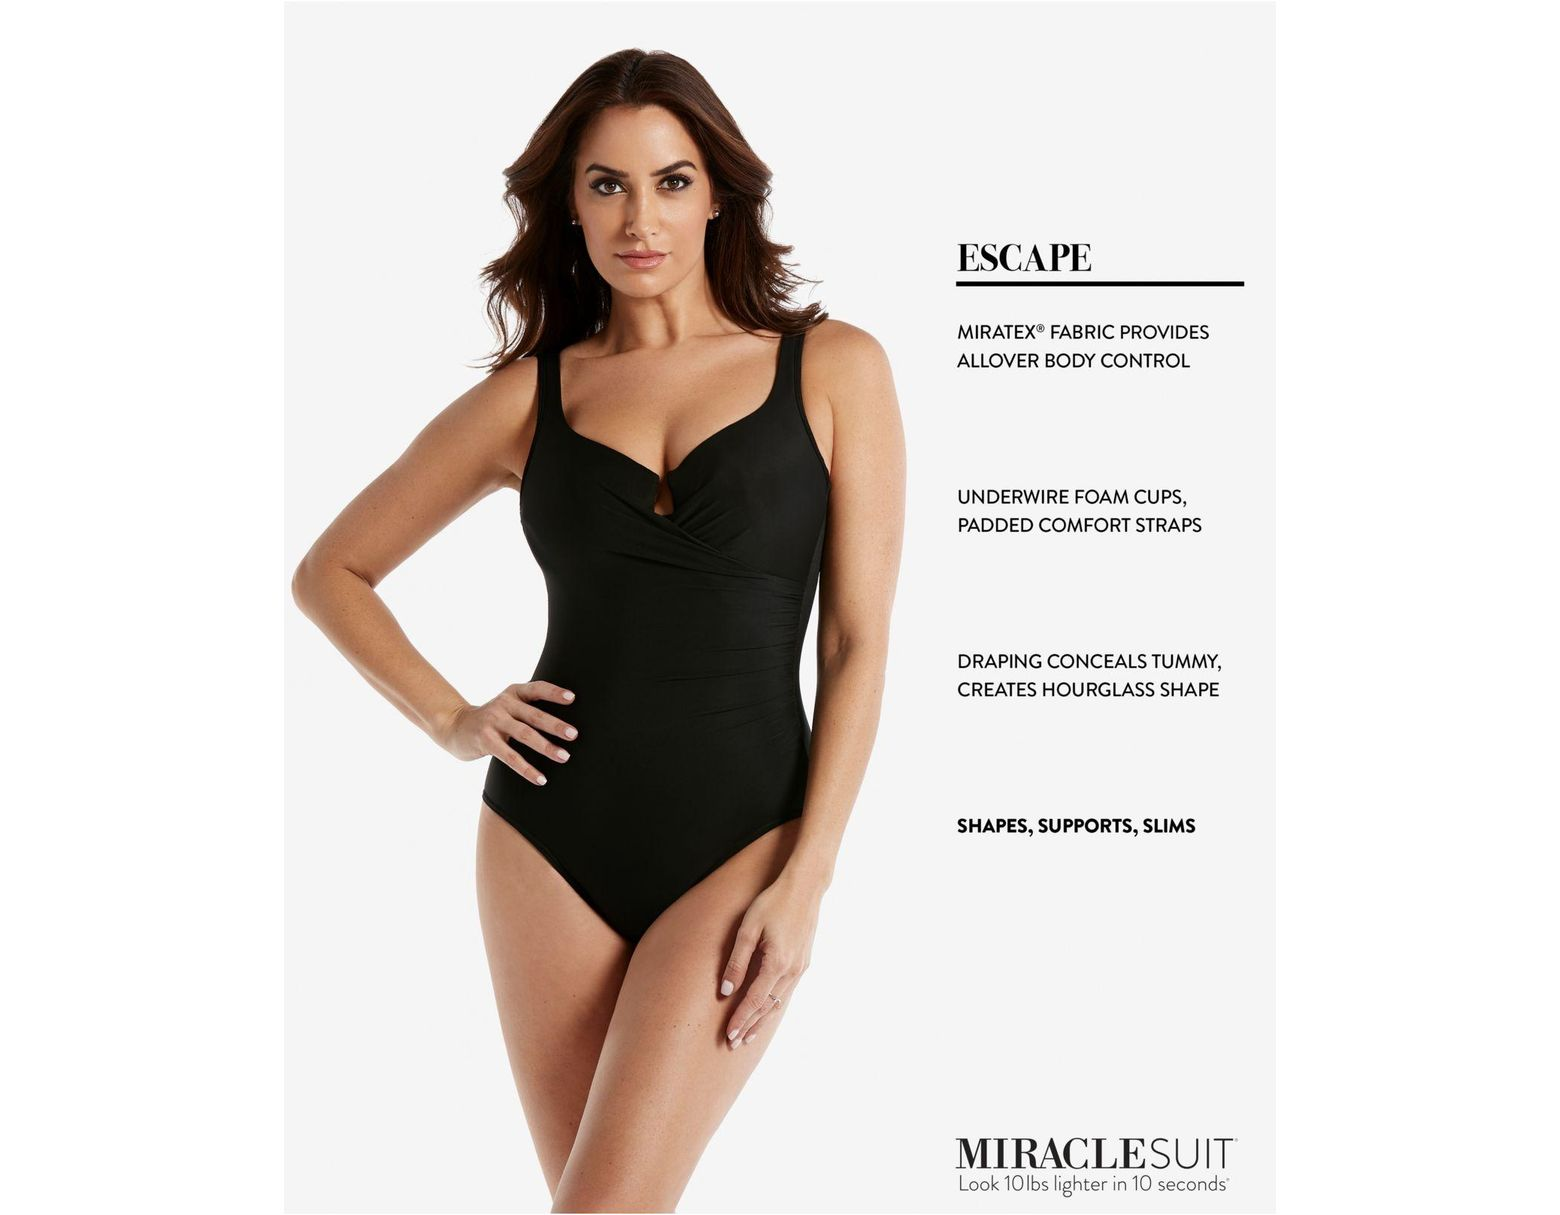 52e3ecd4cd3 Miraclesuit Plus Size Escape Underwire Allover-slimming Wrap One-piece  Swimsuit in Black - Lyst